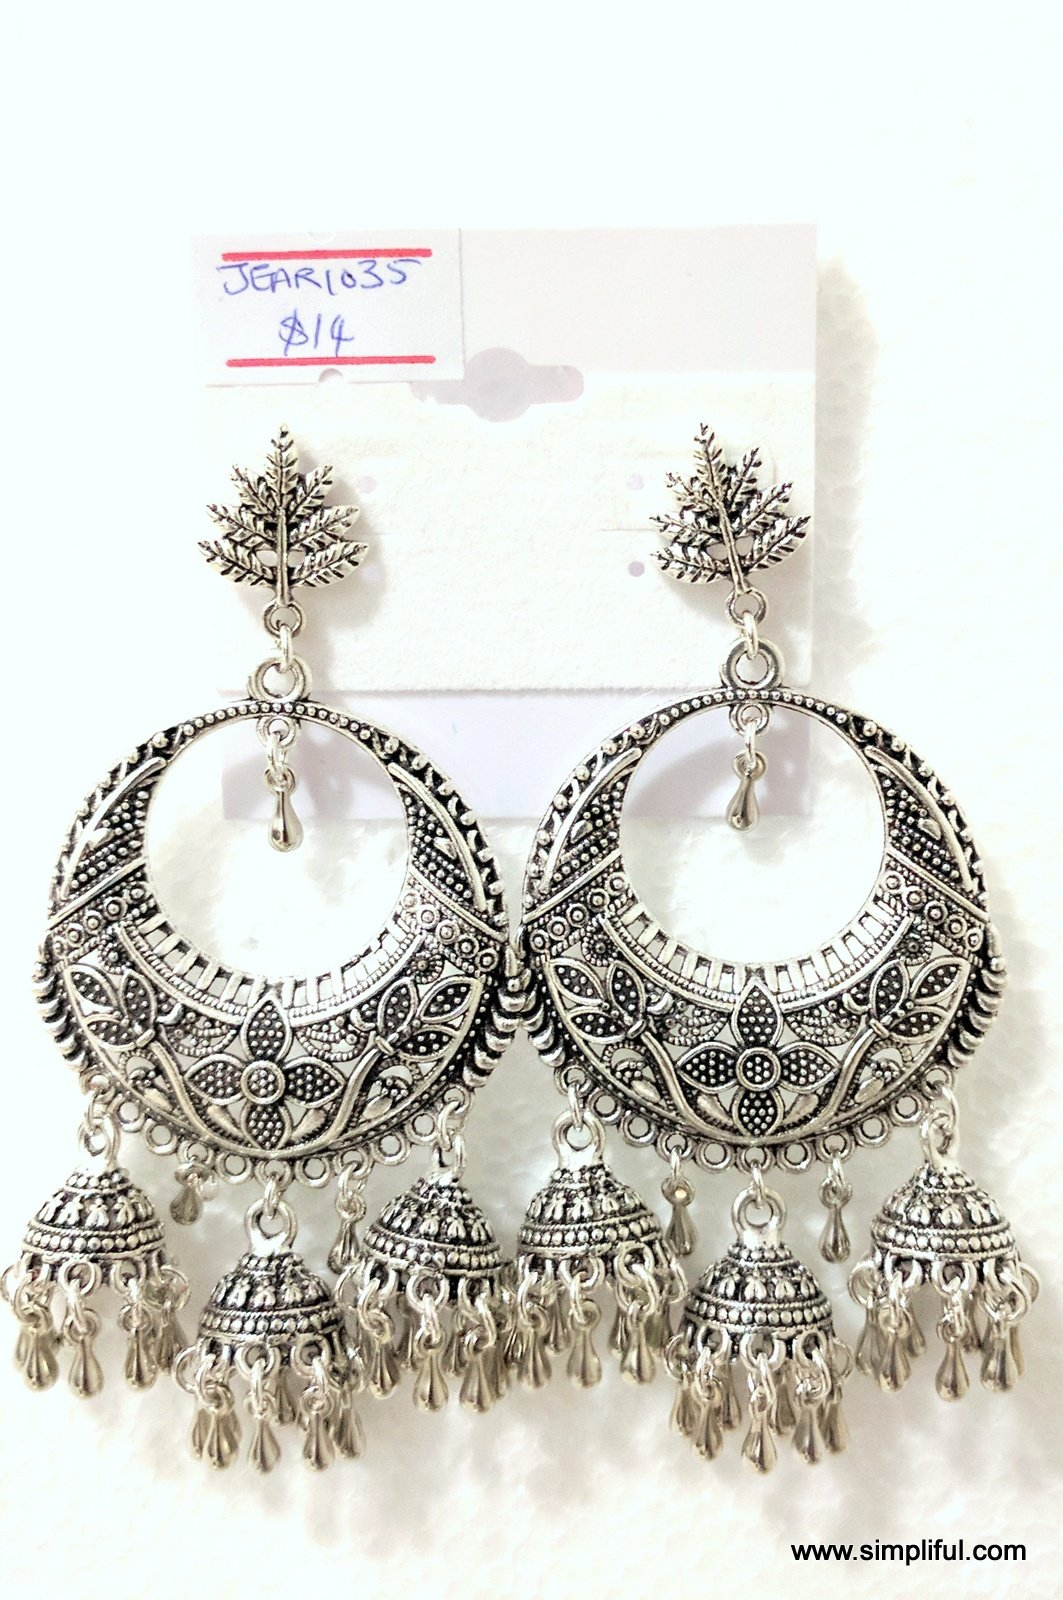 2d387bbe7 Earring length: 3.4 inches; Earring Width: 1.7 inches Please allow some  variation in color.